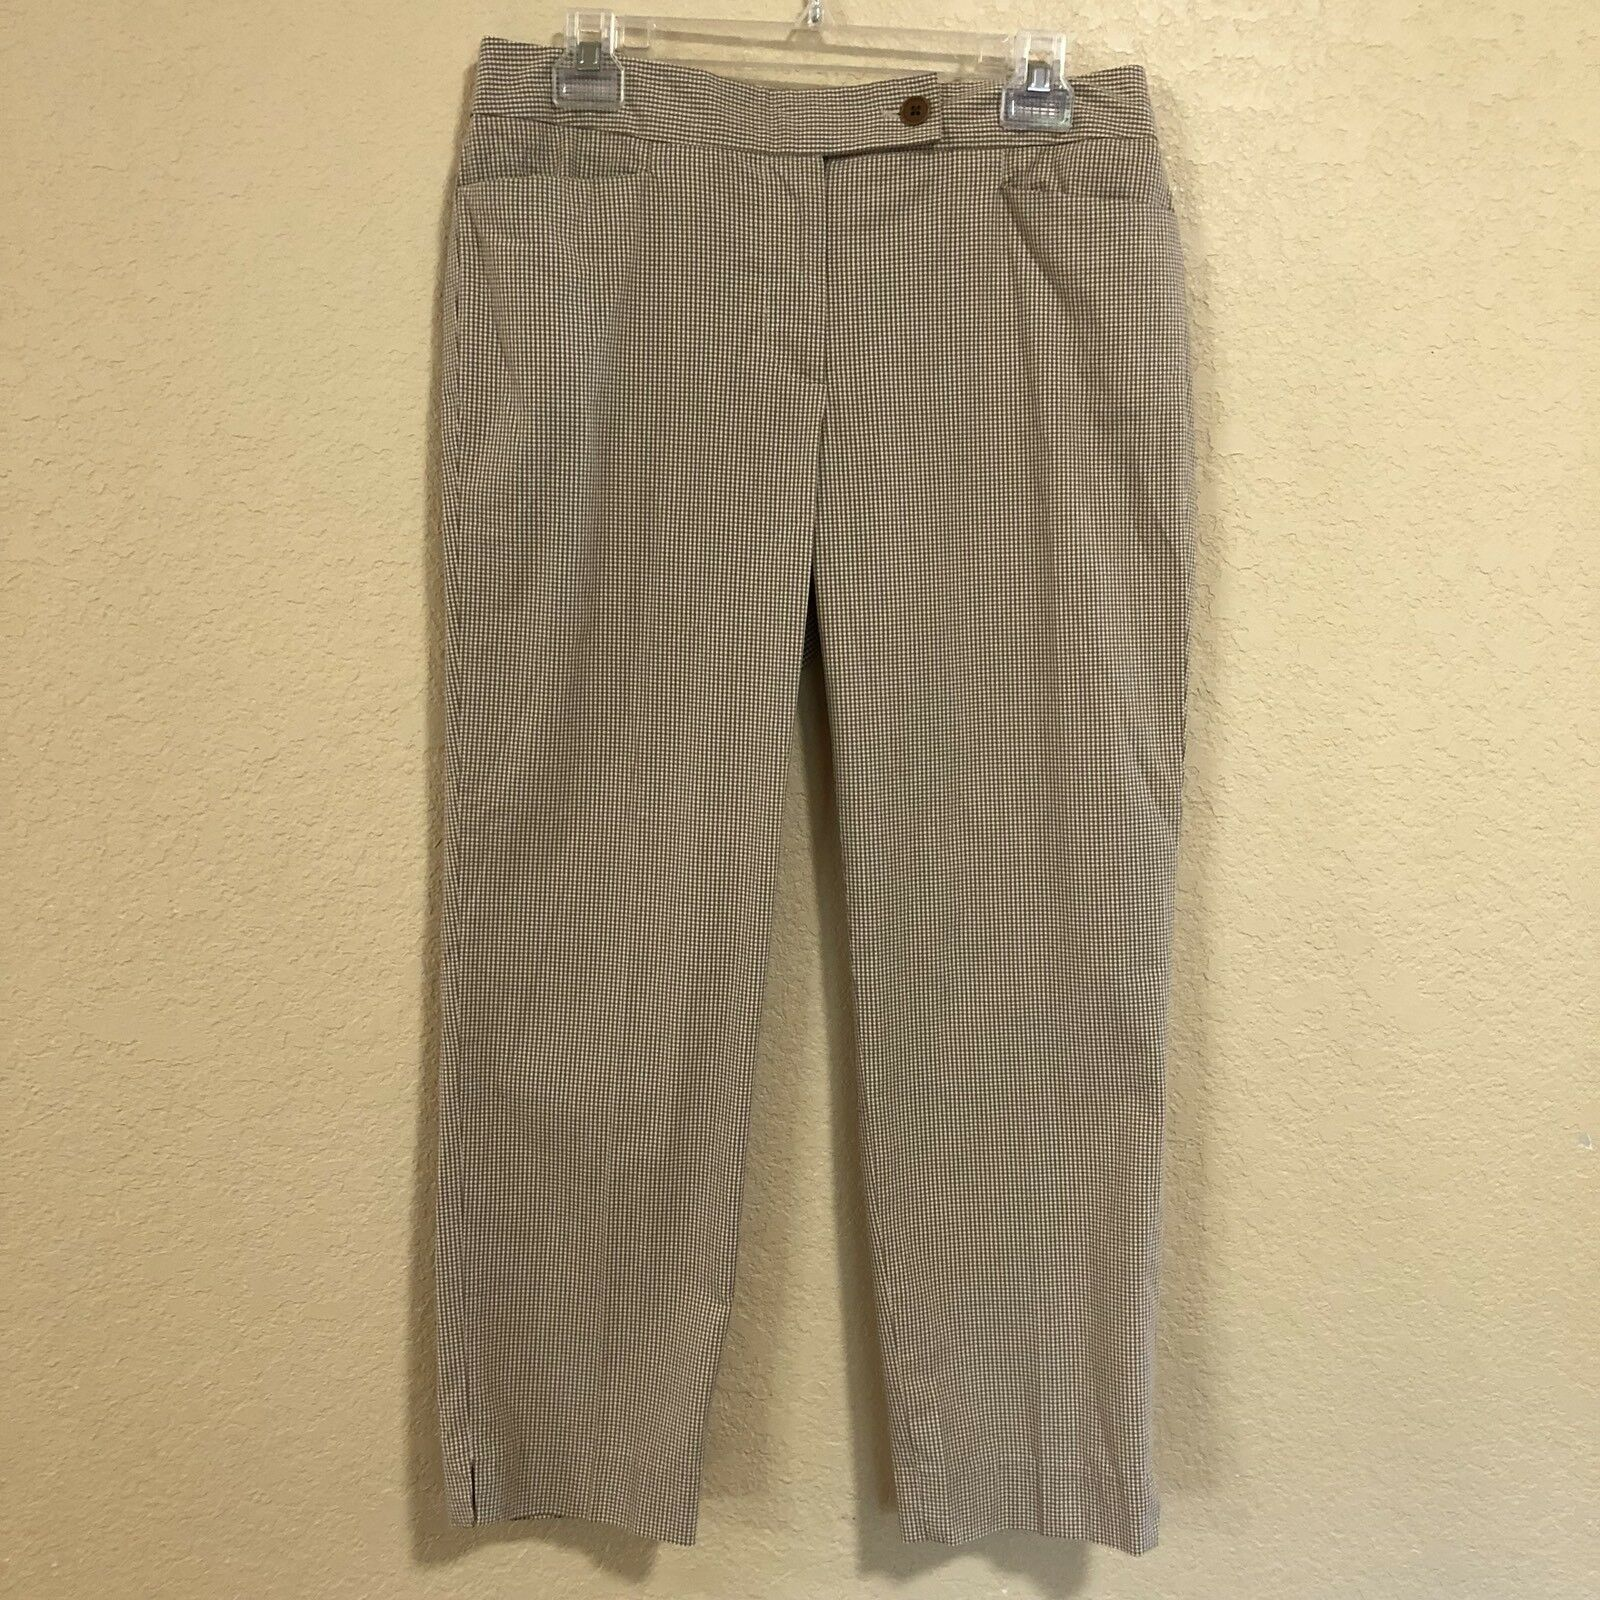 Talbots Size 6 Tan & White Gingham Signature Fit Crop Pants Capris Plaid Summer